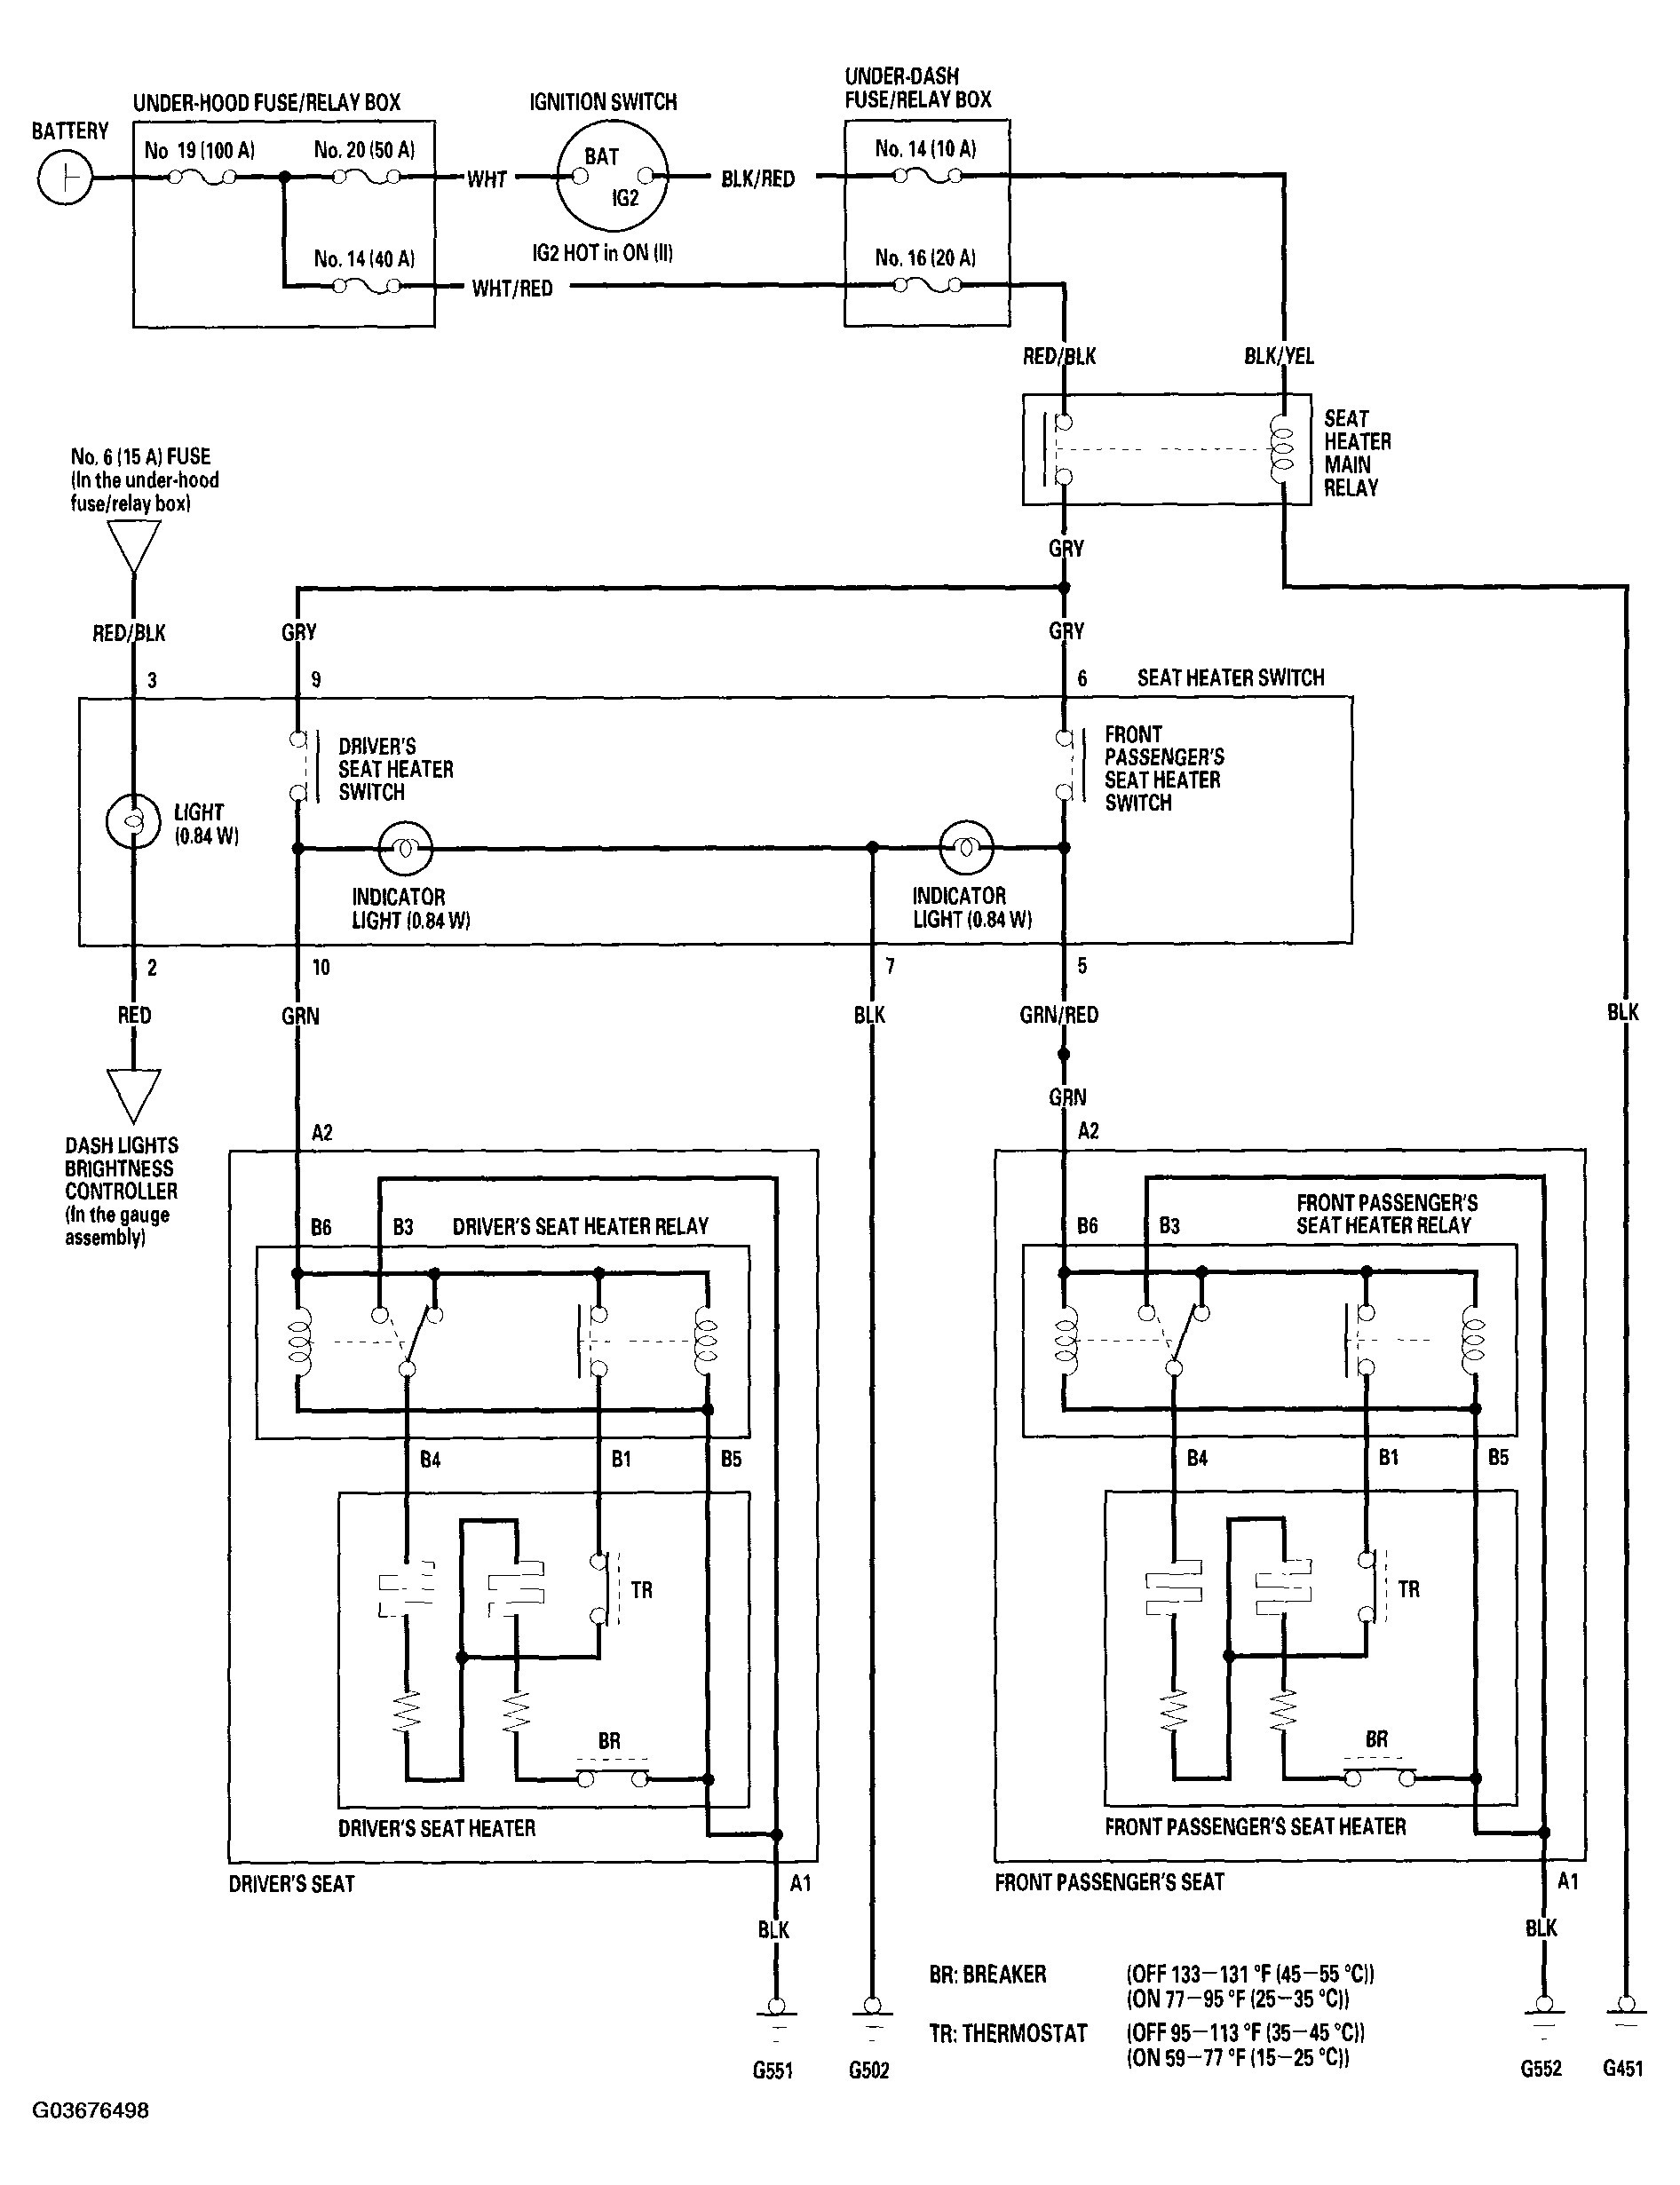 hight resolution of 1993 honda accord engine diagram 1995 honda accord engine diagram cr v fuse box diagram besides